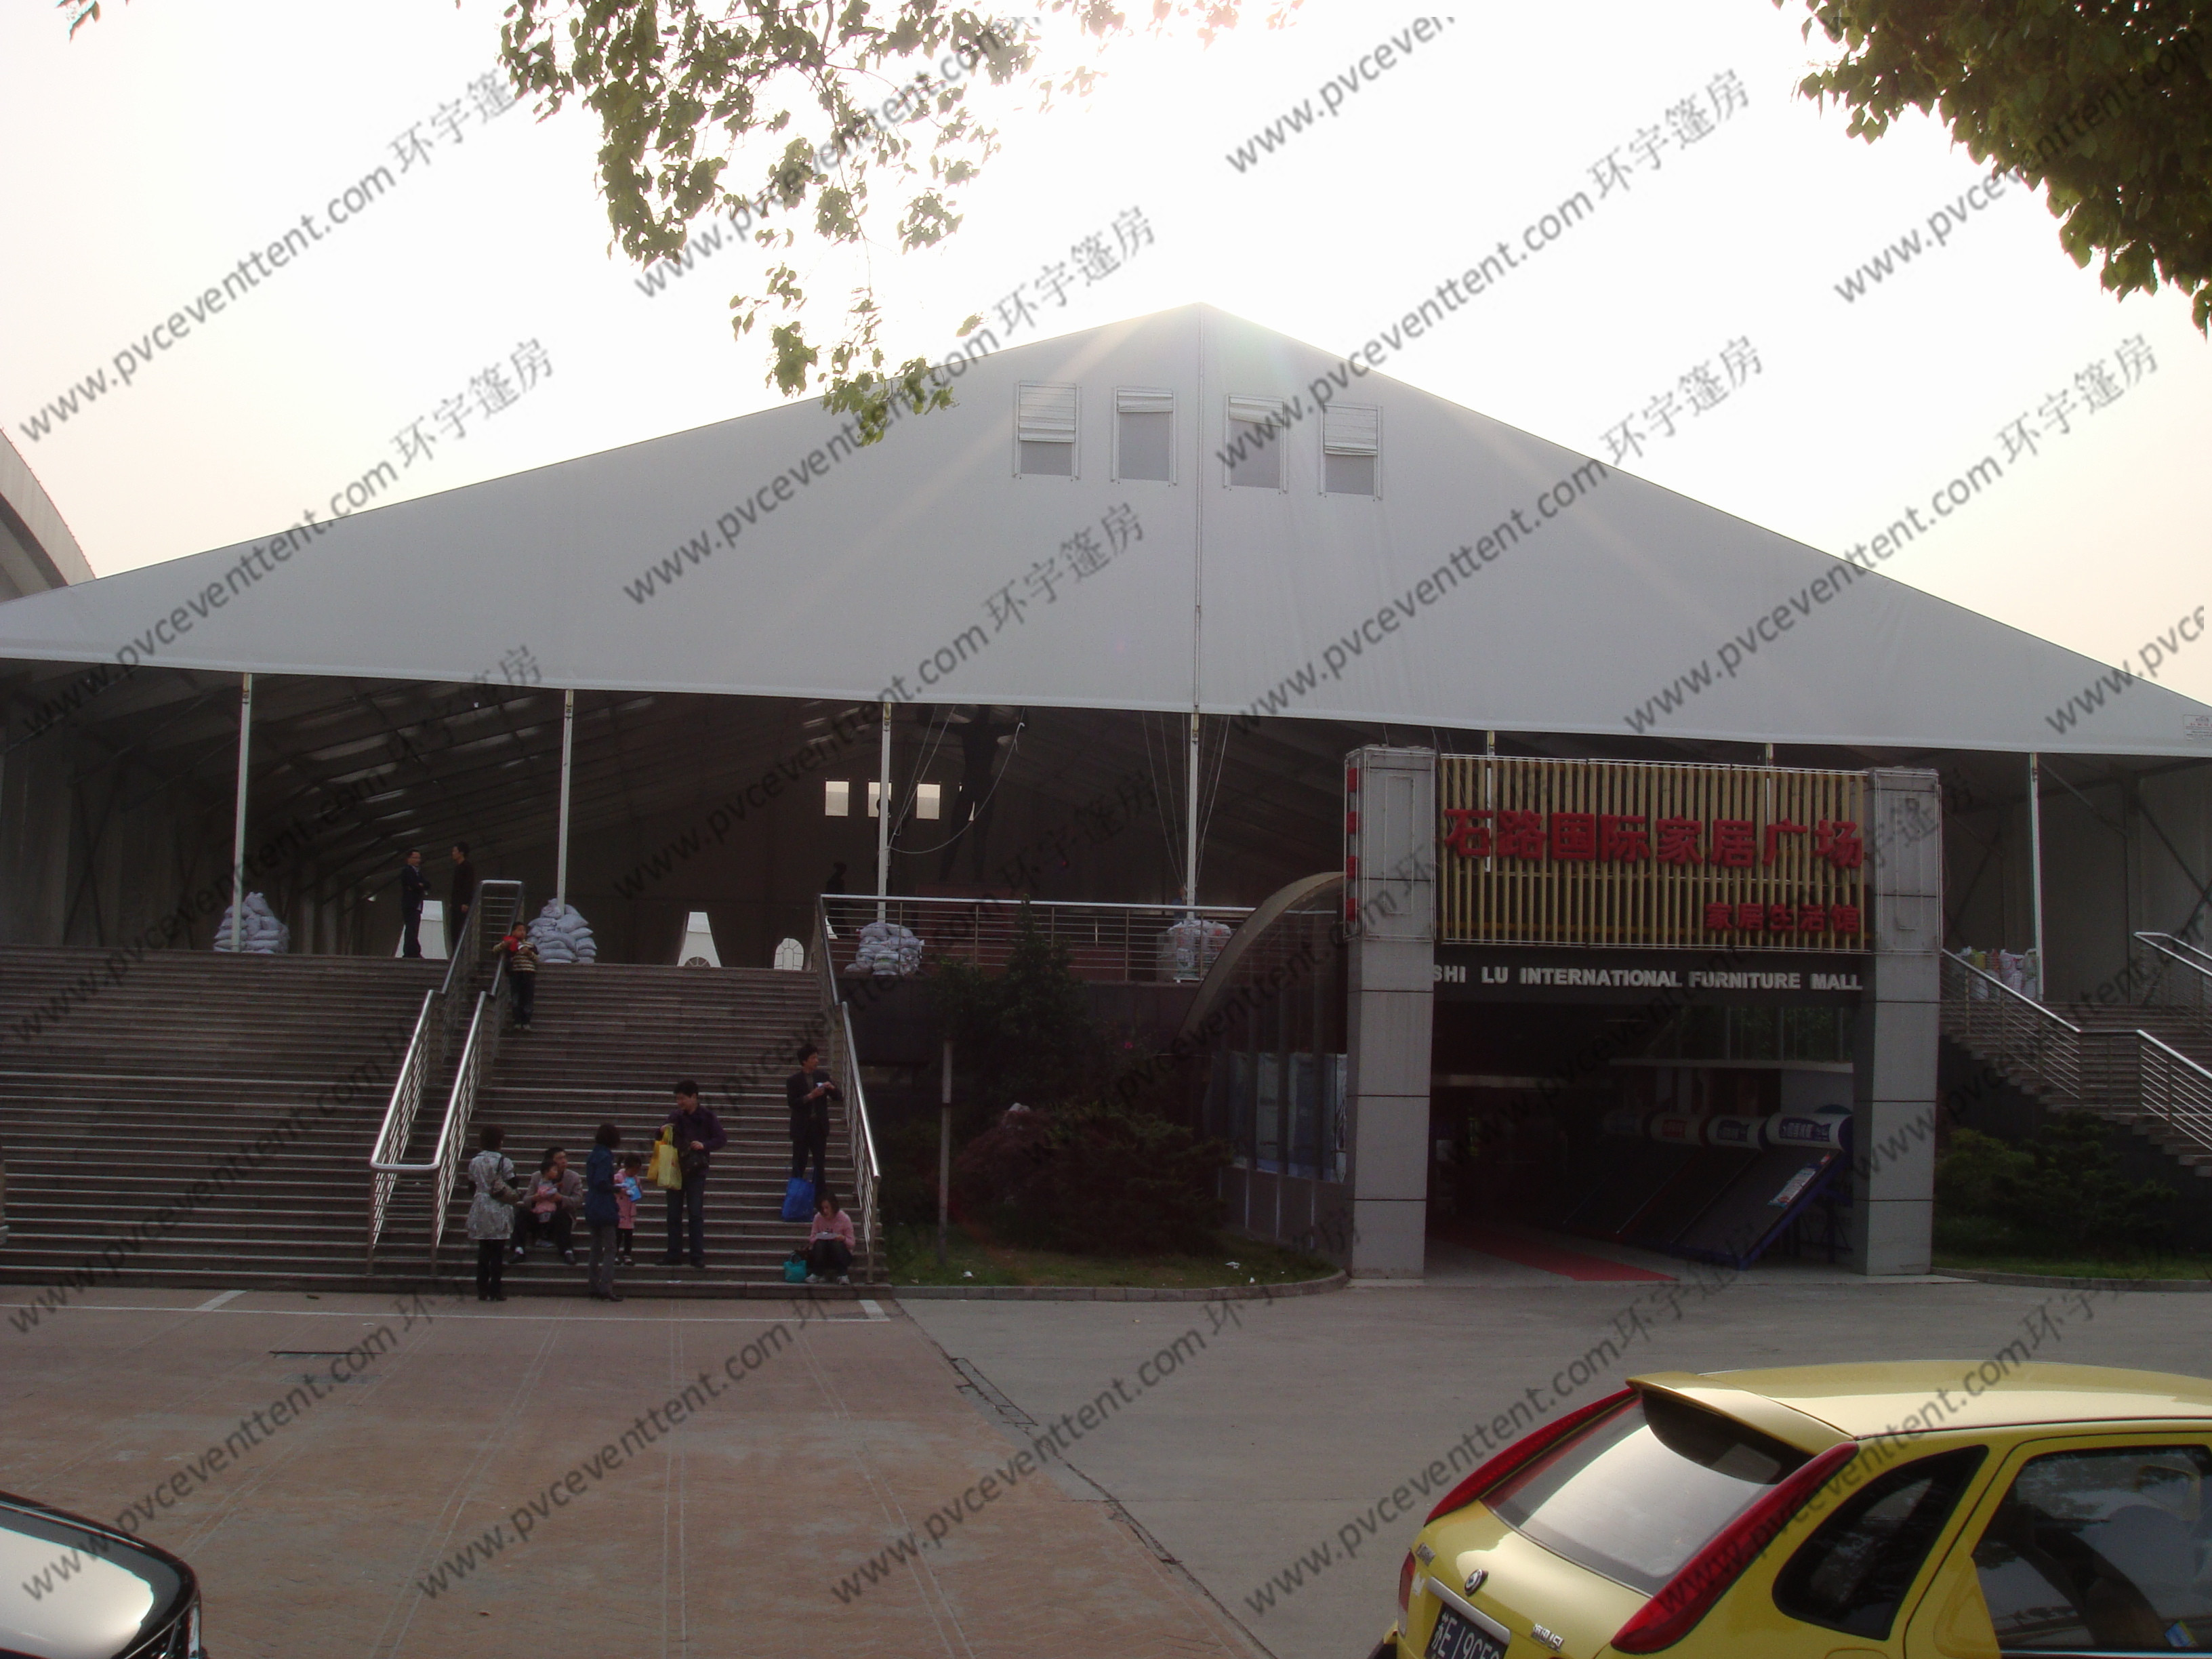 Waterproof Outdoor Exhibition Tents 40 x 60m , Trade Show Canopy On Special Floor